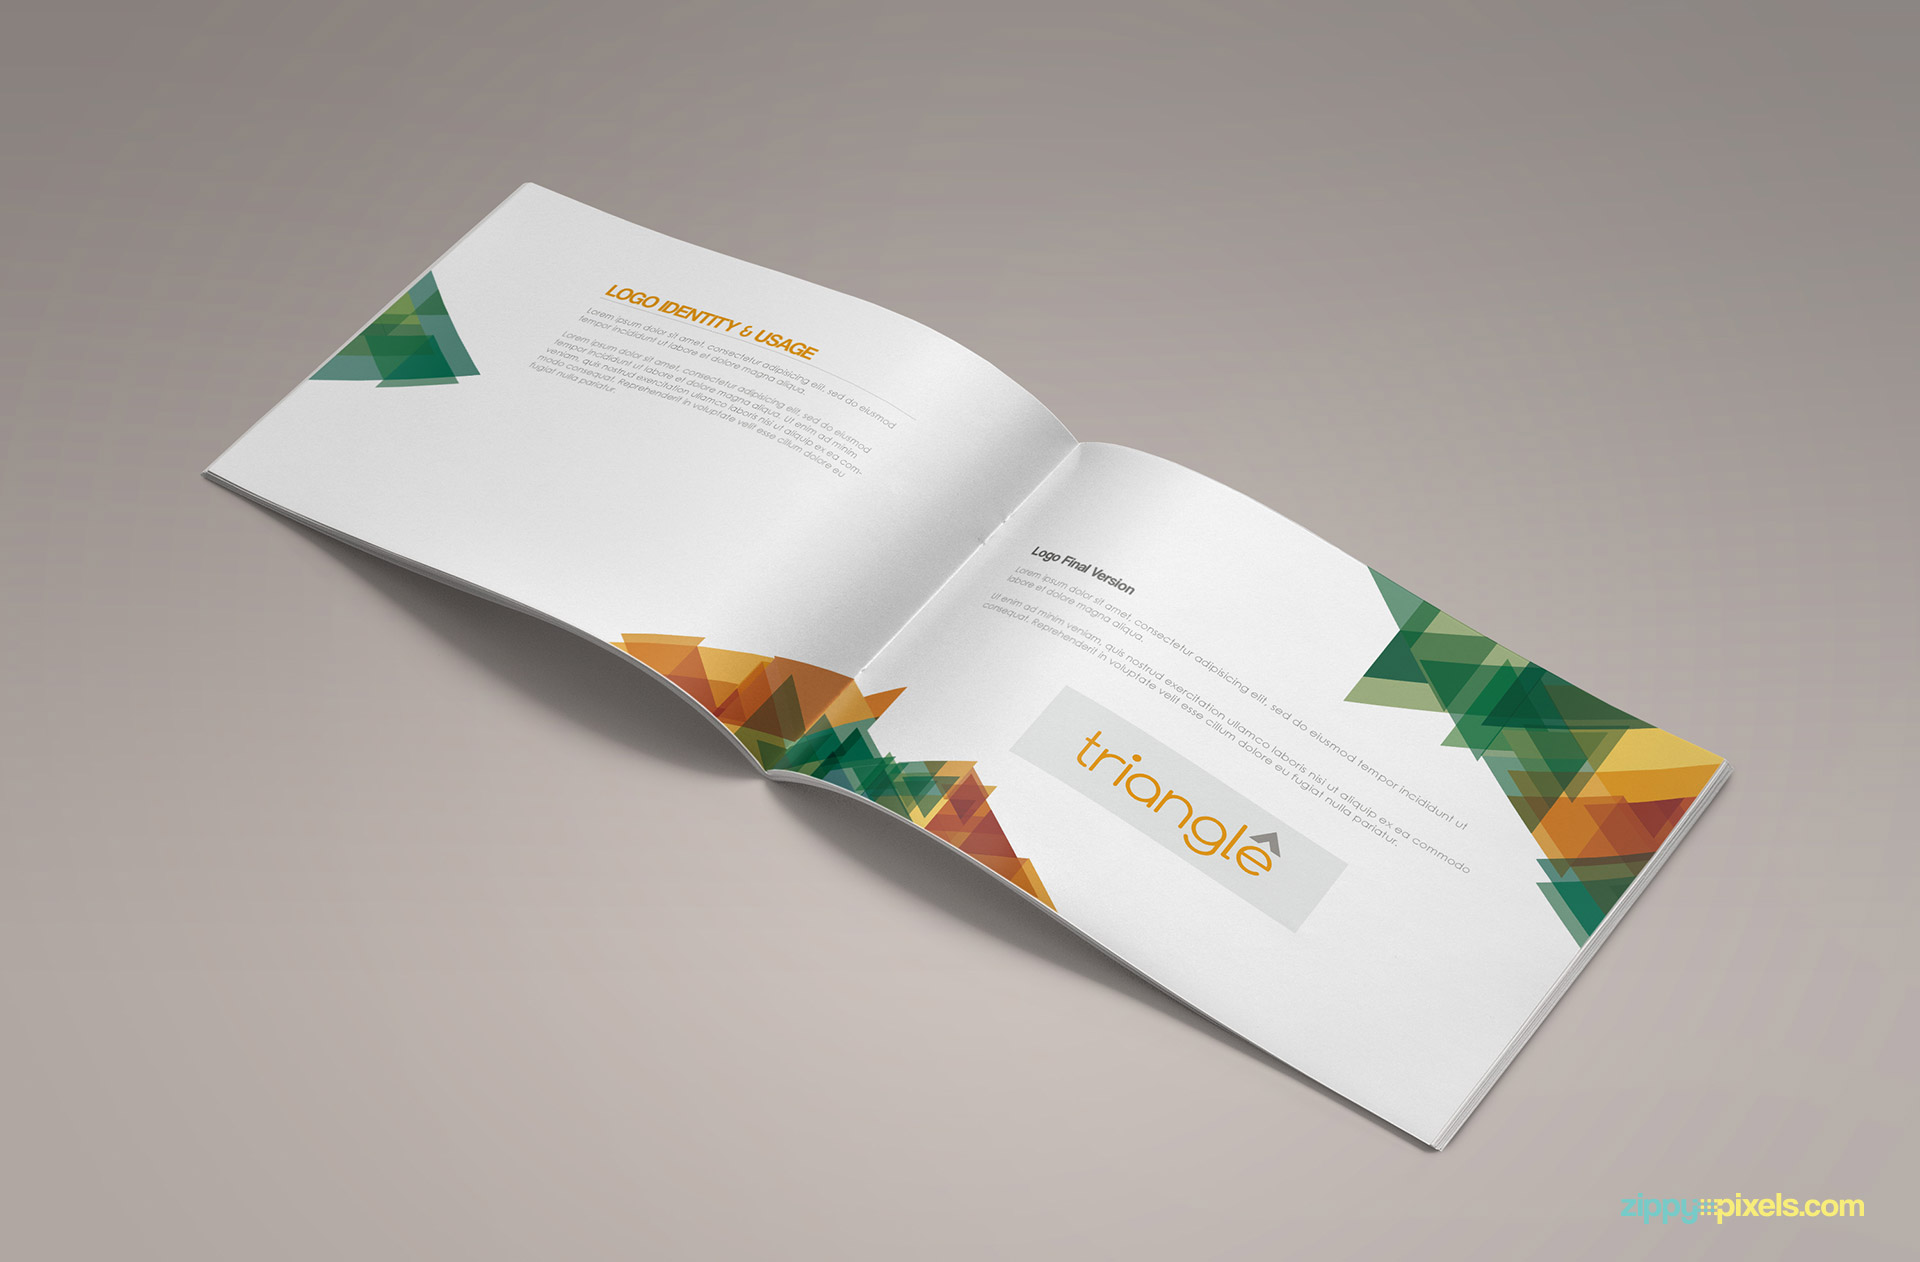 07-brand-book-9-logo-identity-usage